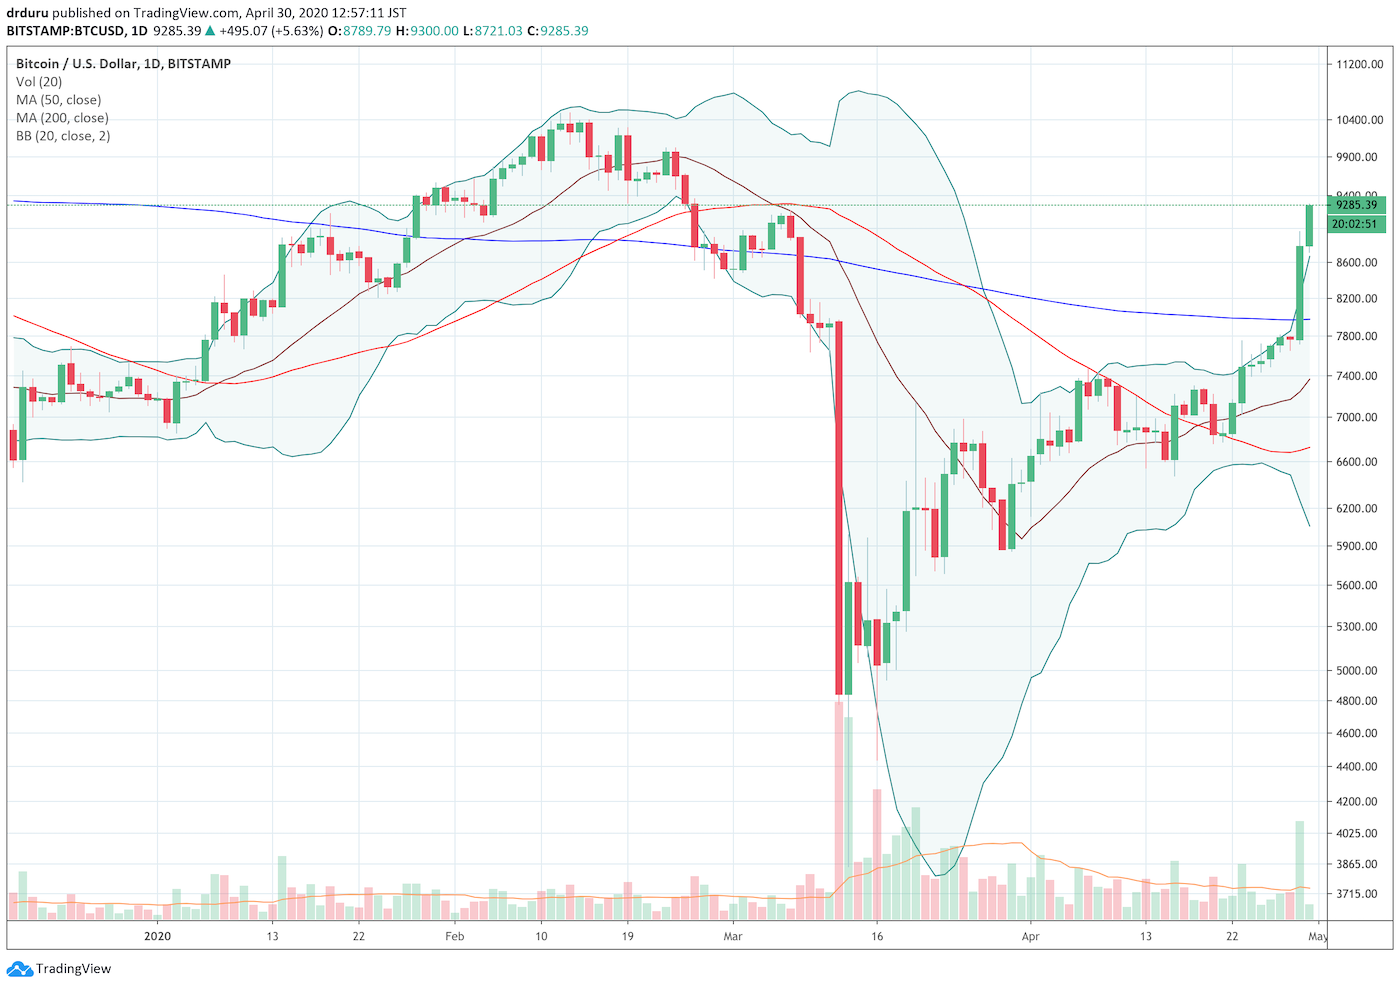 Bitcoin (BTC/USD) is surging after a convincing 200DMA breakout.